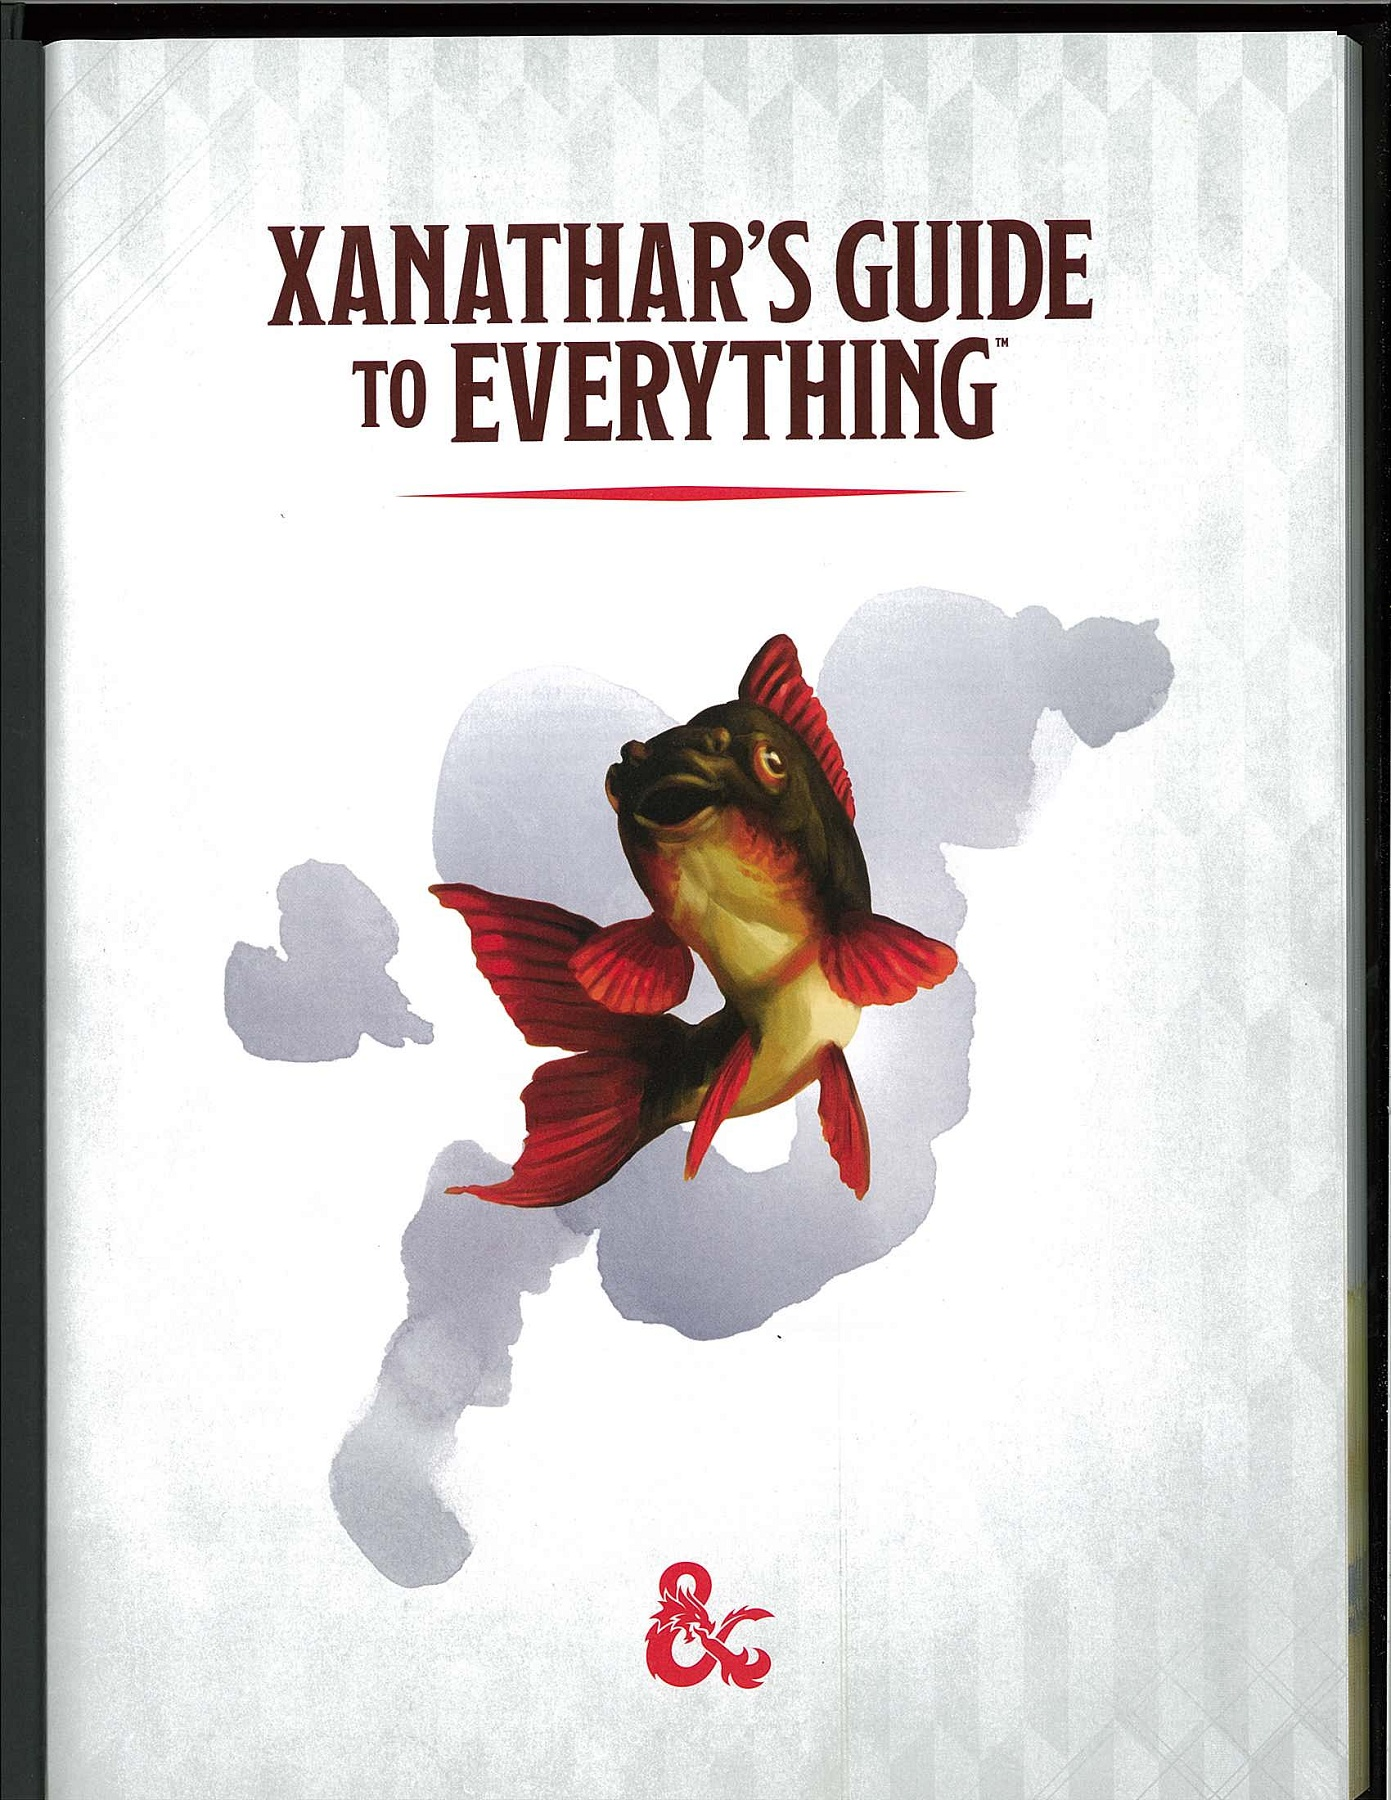 Xanathar's Guide To Everything Pages 1 - 50 - Text Version | AnyFlip